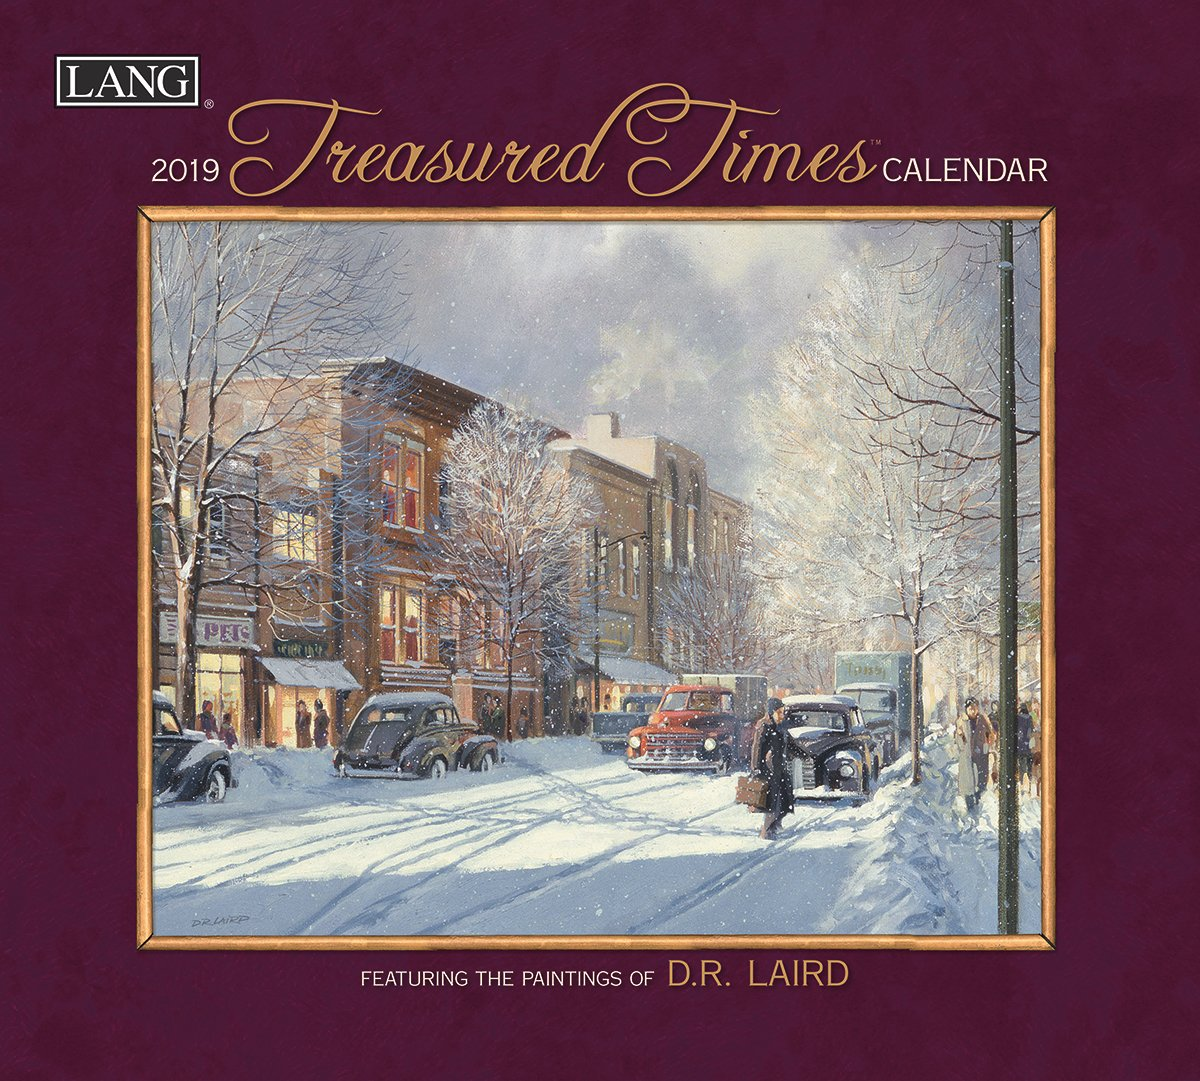 Amazon.com : The LANG Companies Treasured Times 2019 Wall Calendar  (19991001882) : Office Products